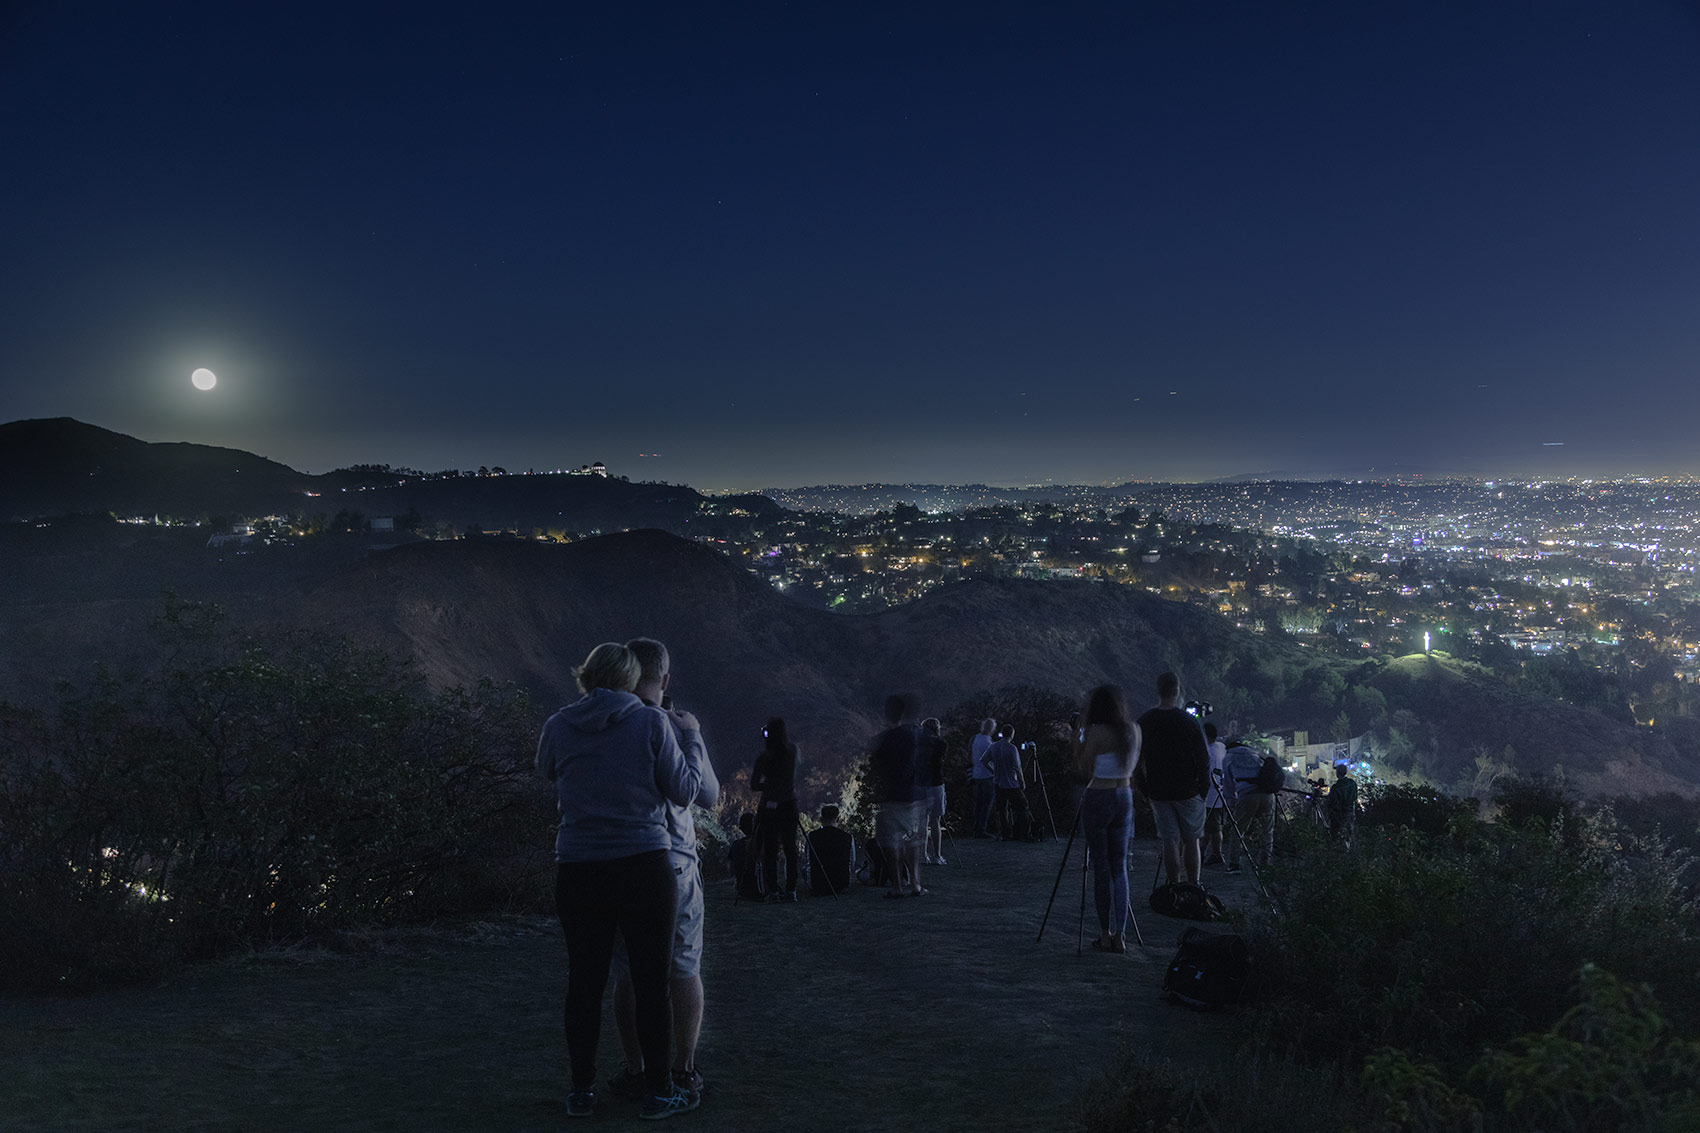 Supermoon event from Mulholland Drive vista point